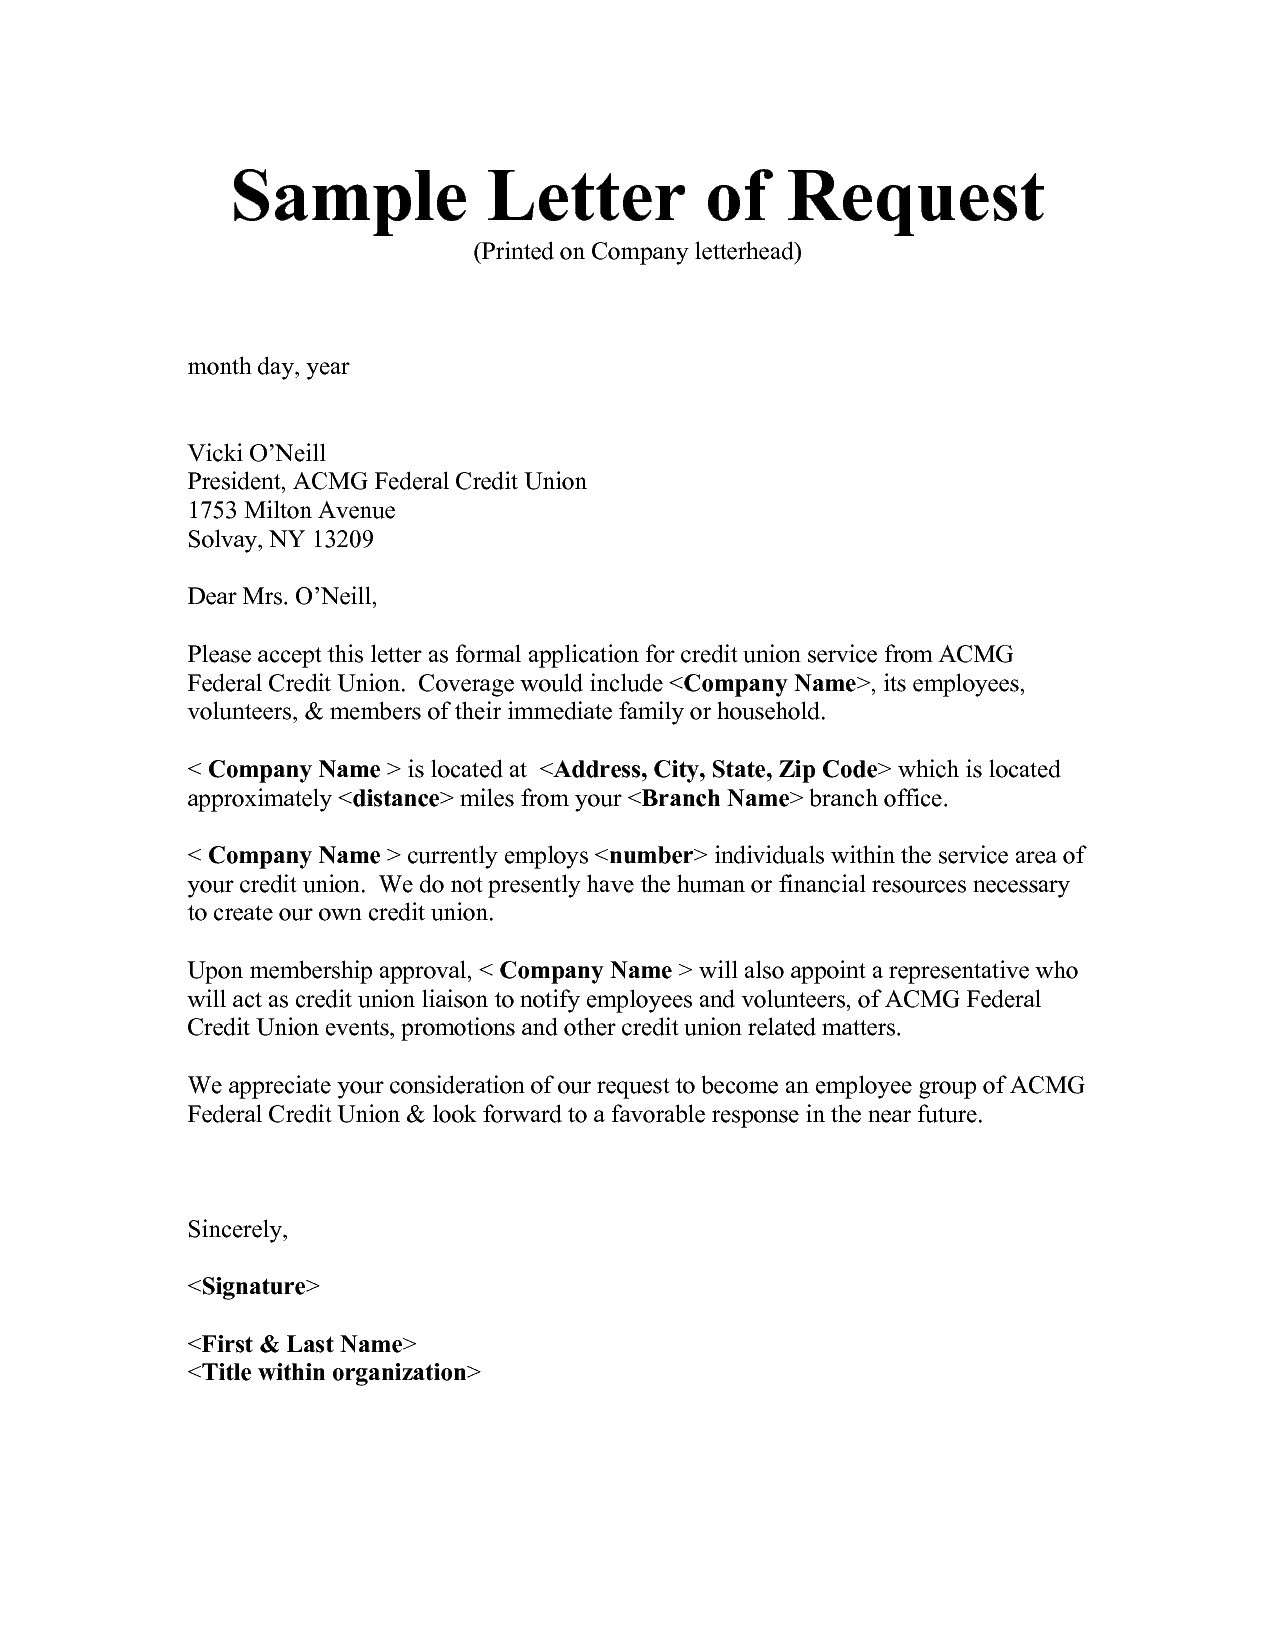 rent reduction letter template example-rent reduction letter template 10-m